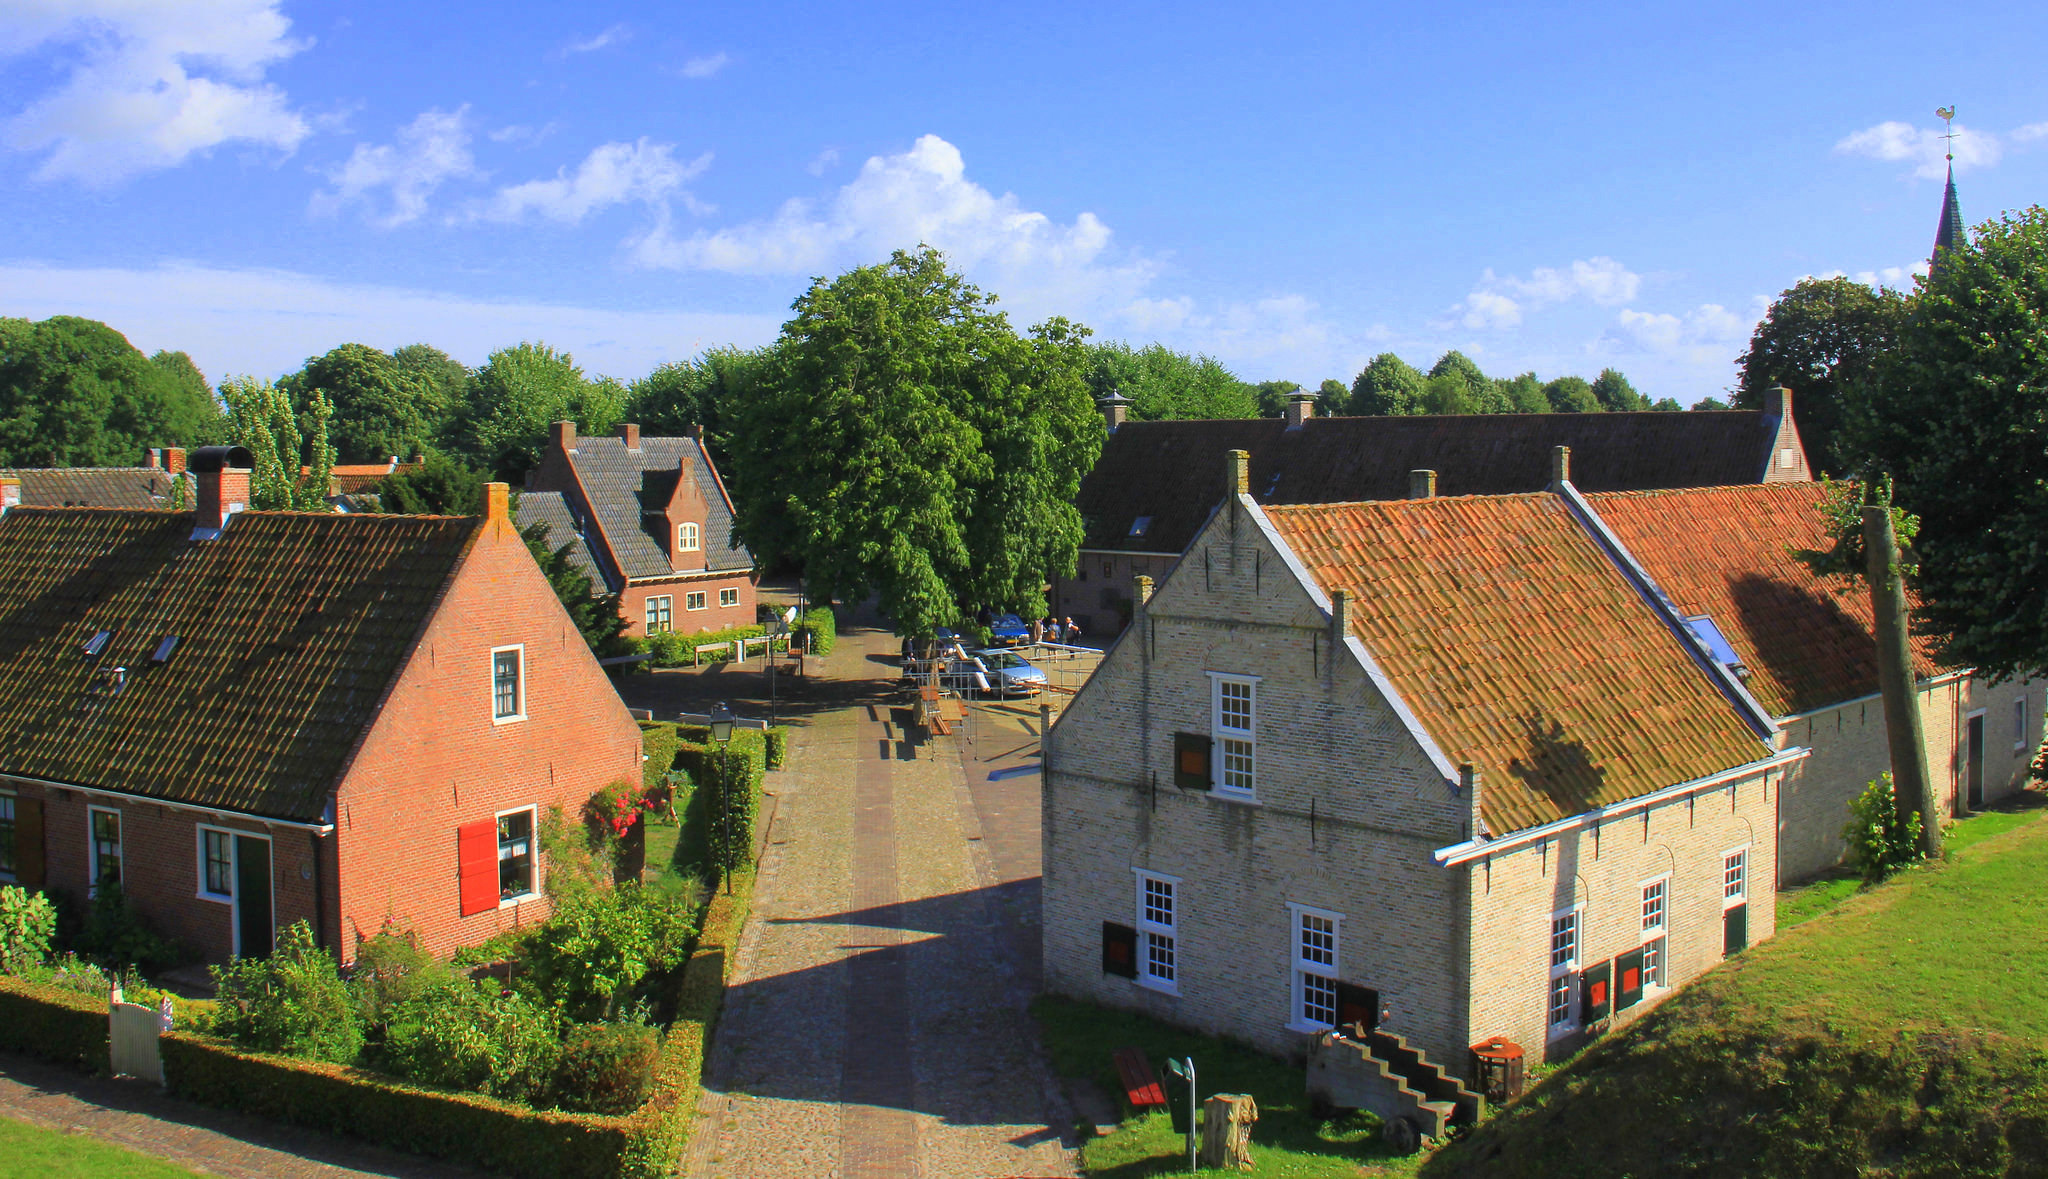 Giethoorn village is well planned